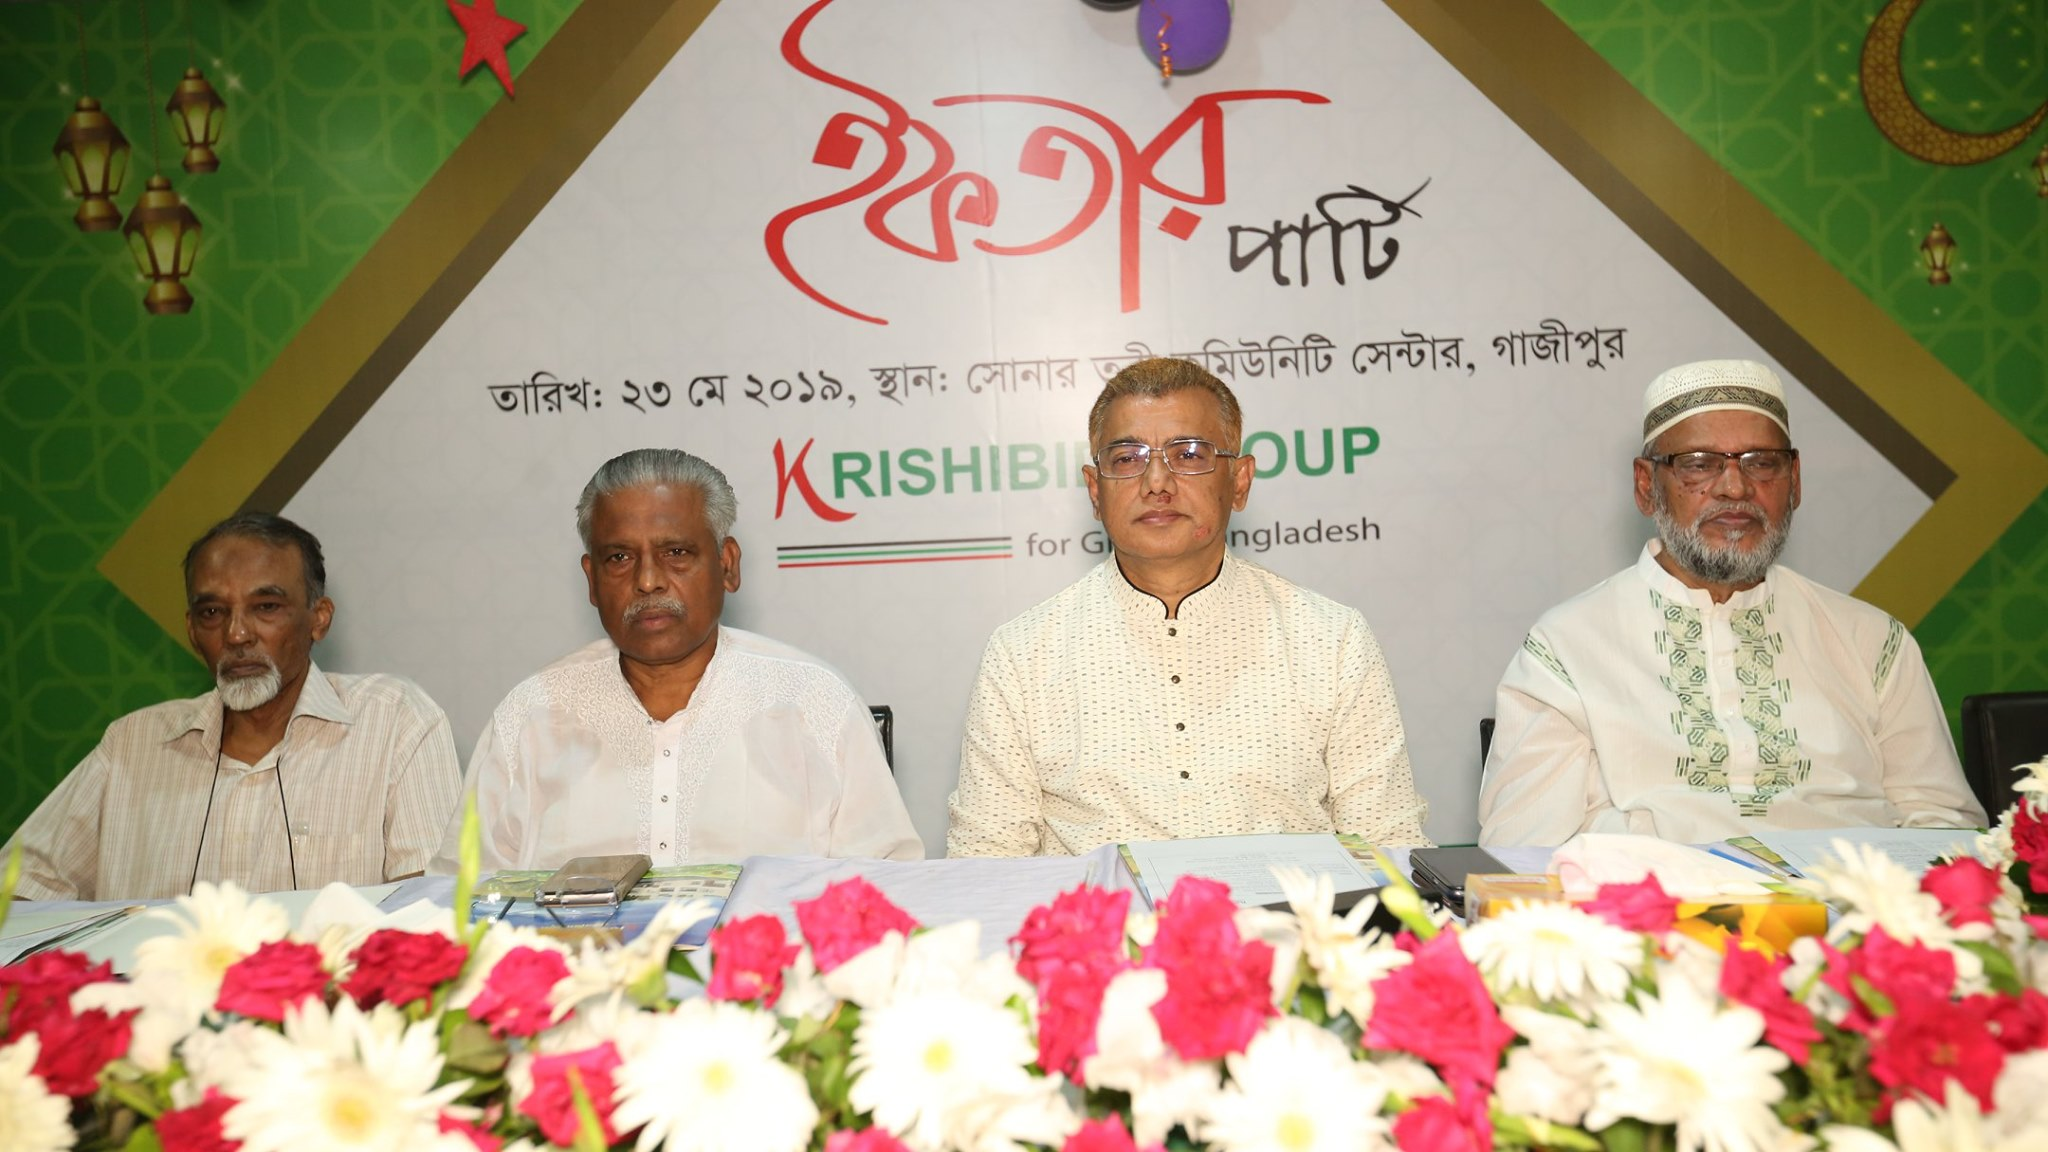 Meritorious Reputation and Iftar Party of Krishibid Group at Sonar Tori Community Center, Gazipur